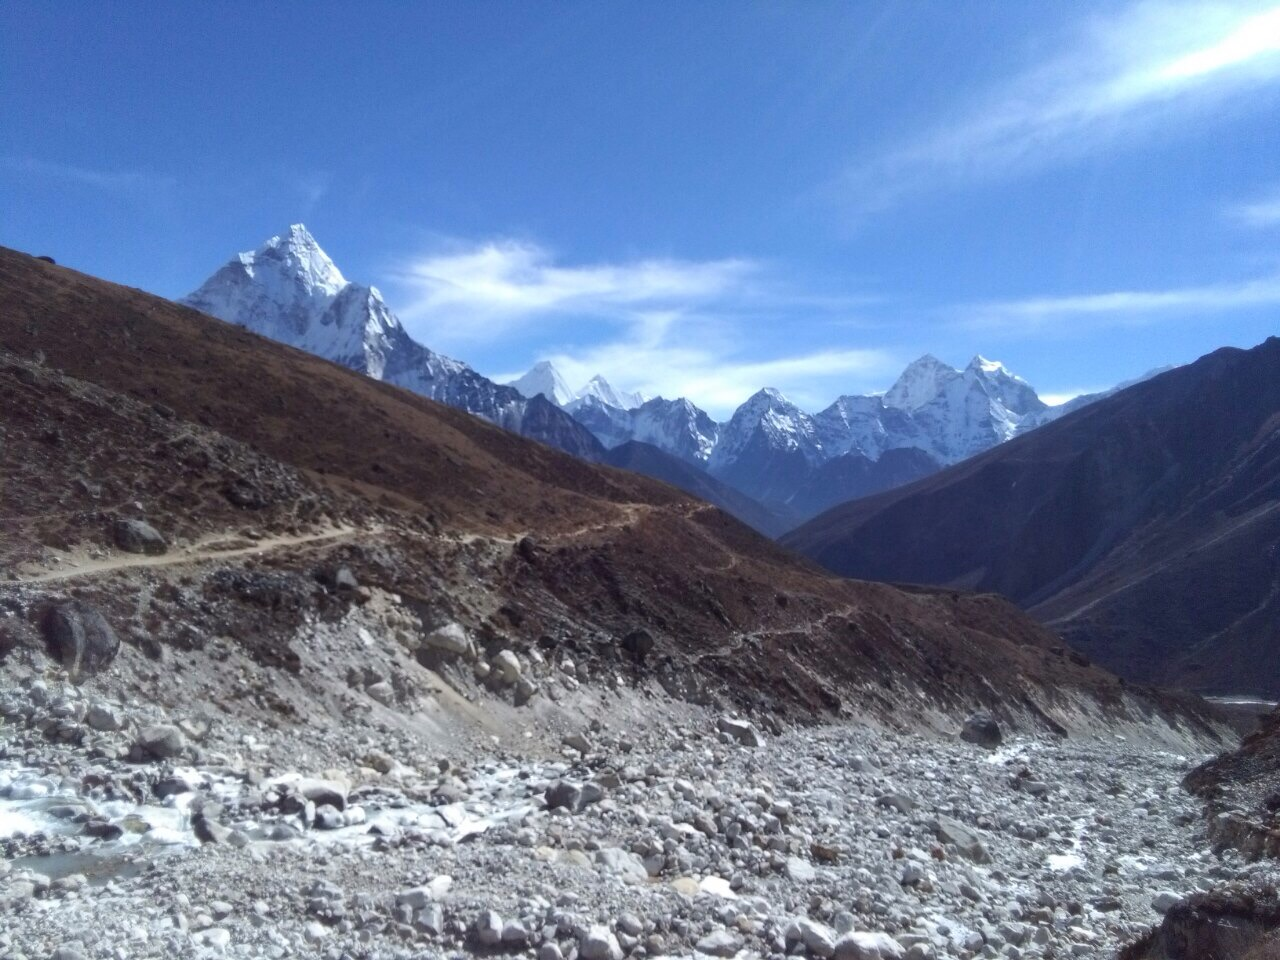 Himalaya five peaks technical course +Mt.Ama-Dablam